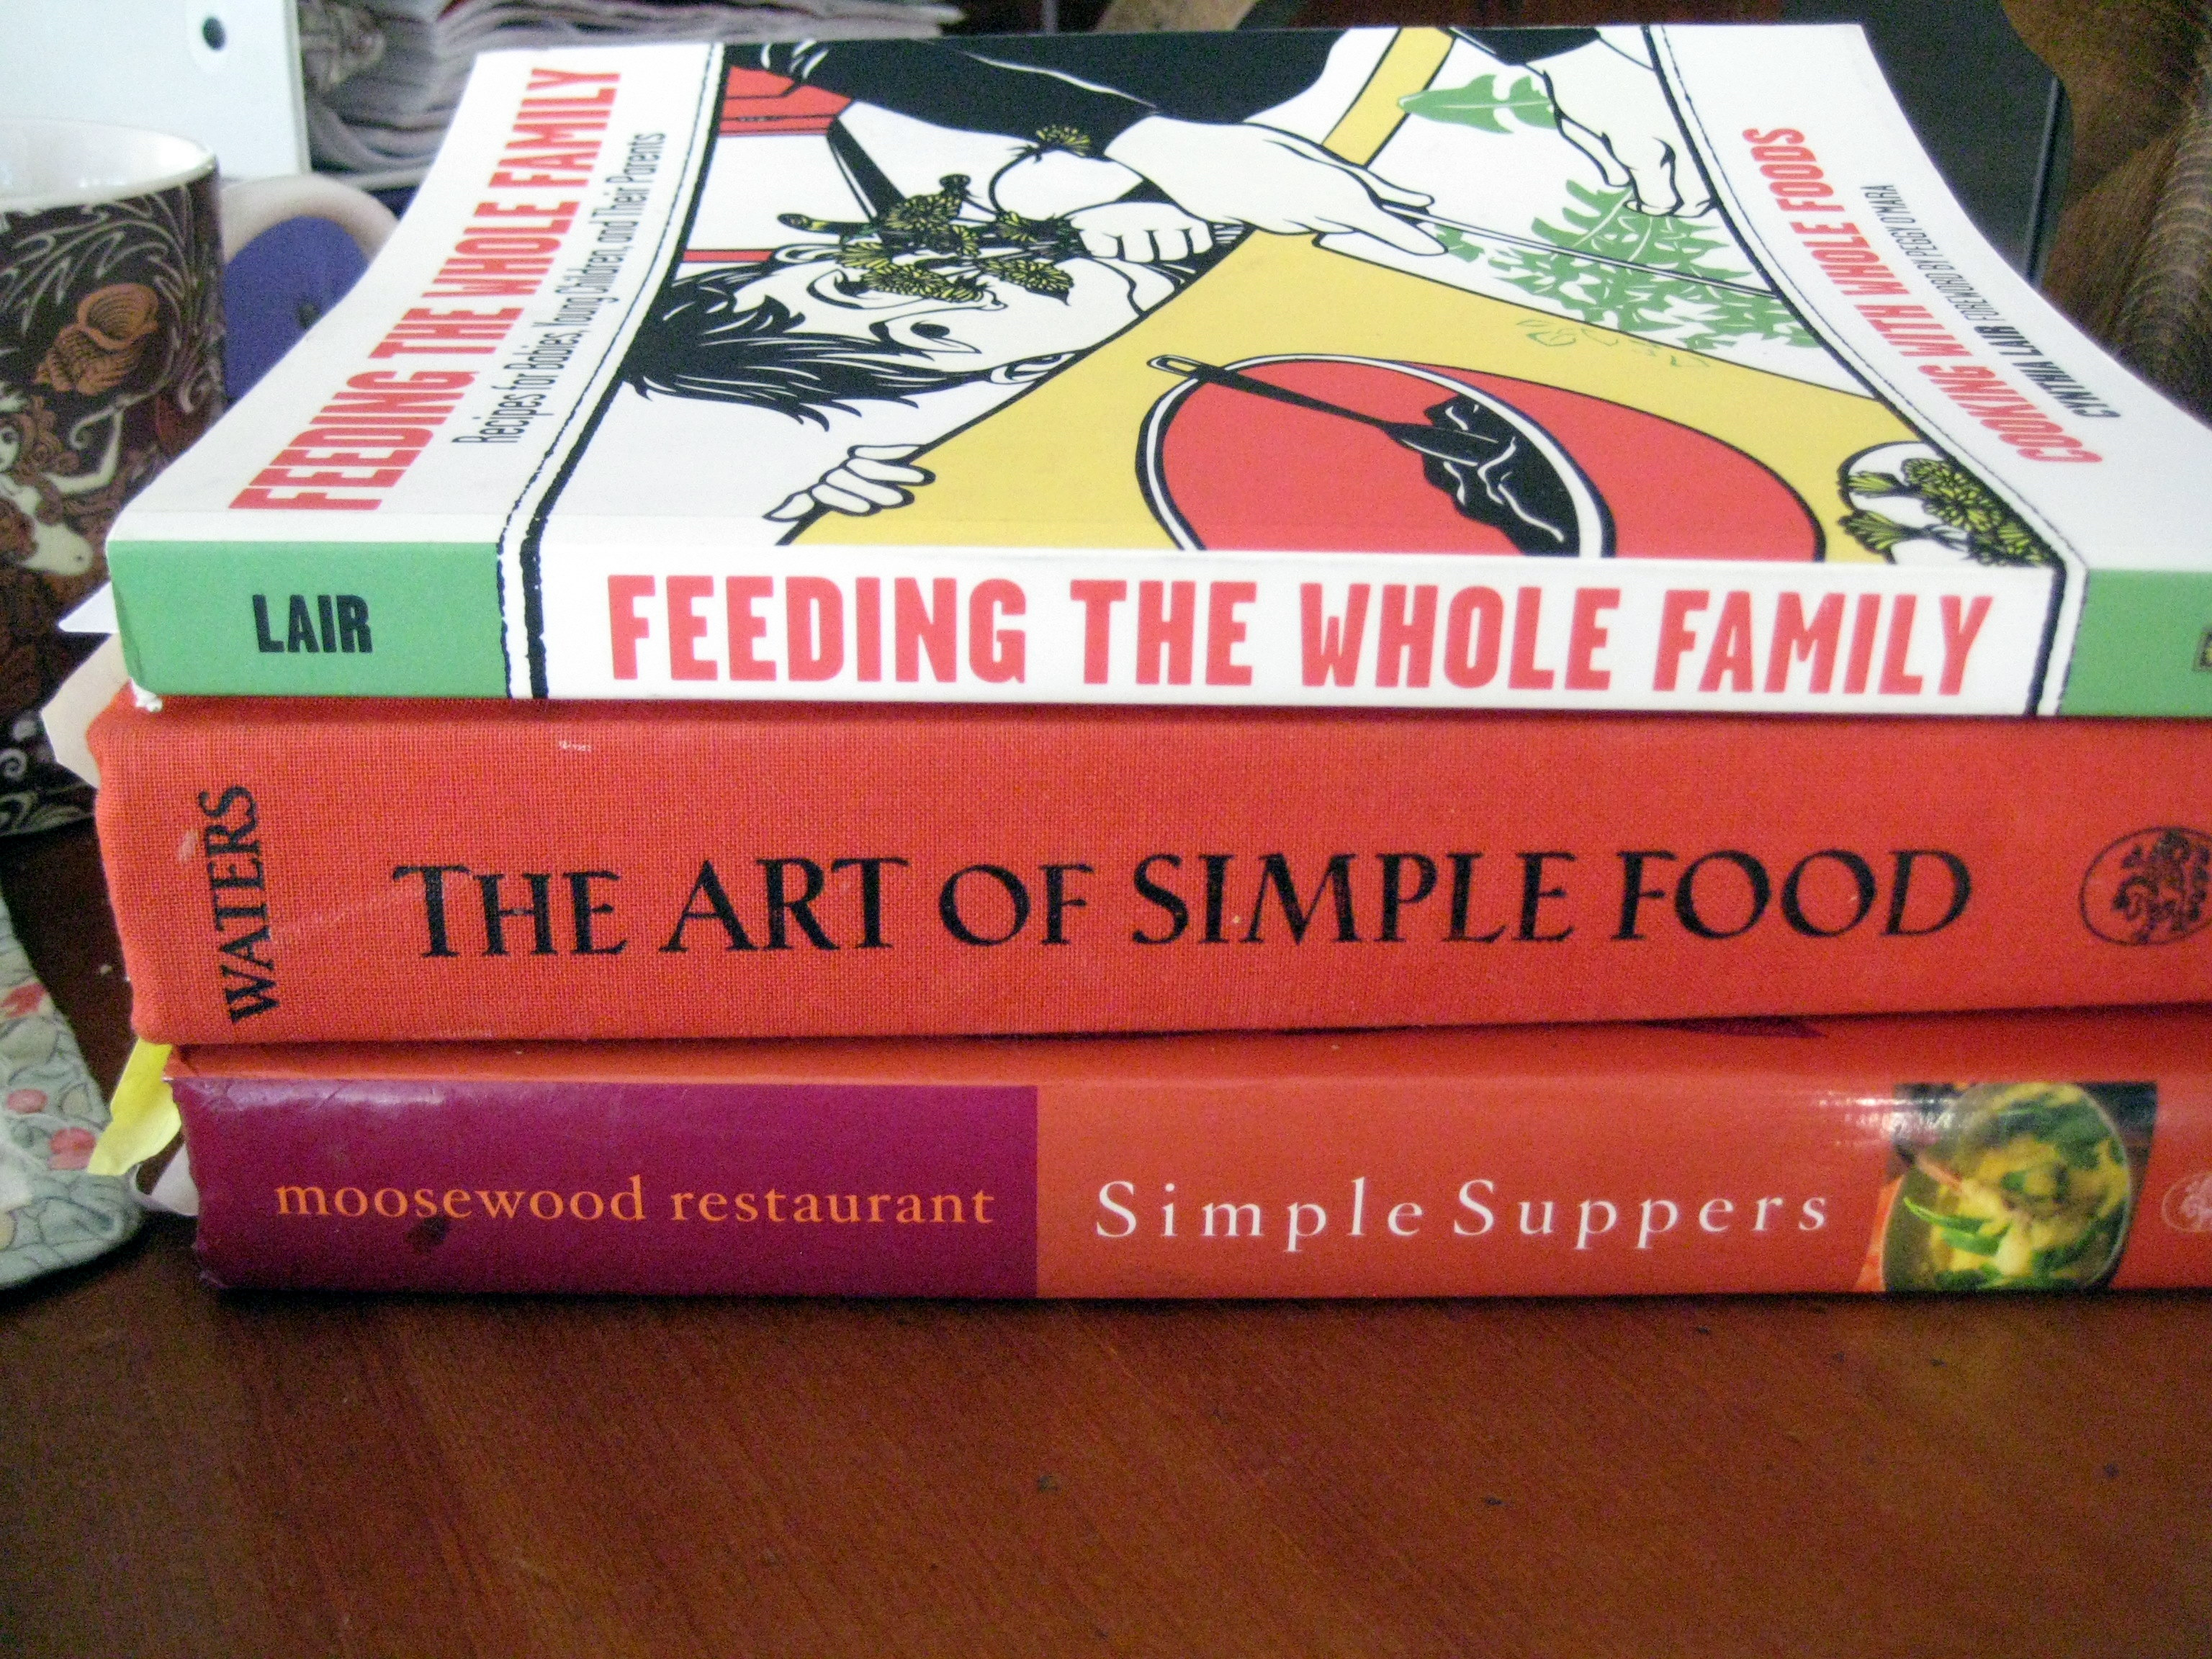 meal planning and cookbooks